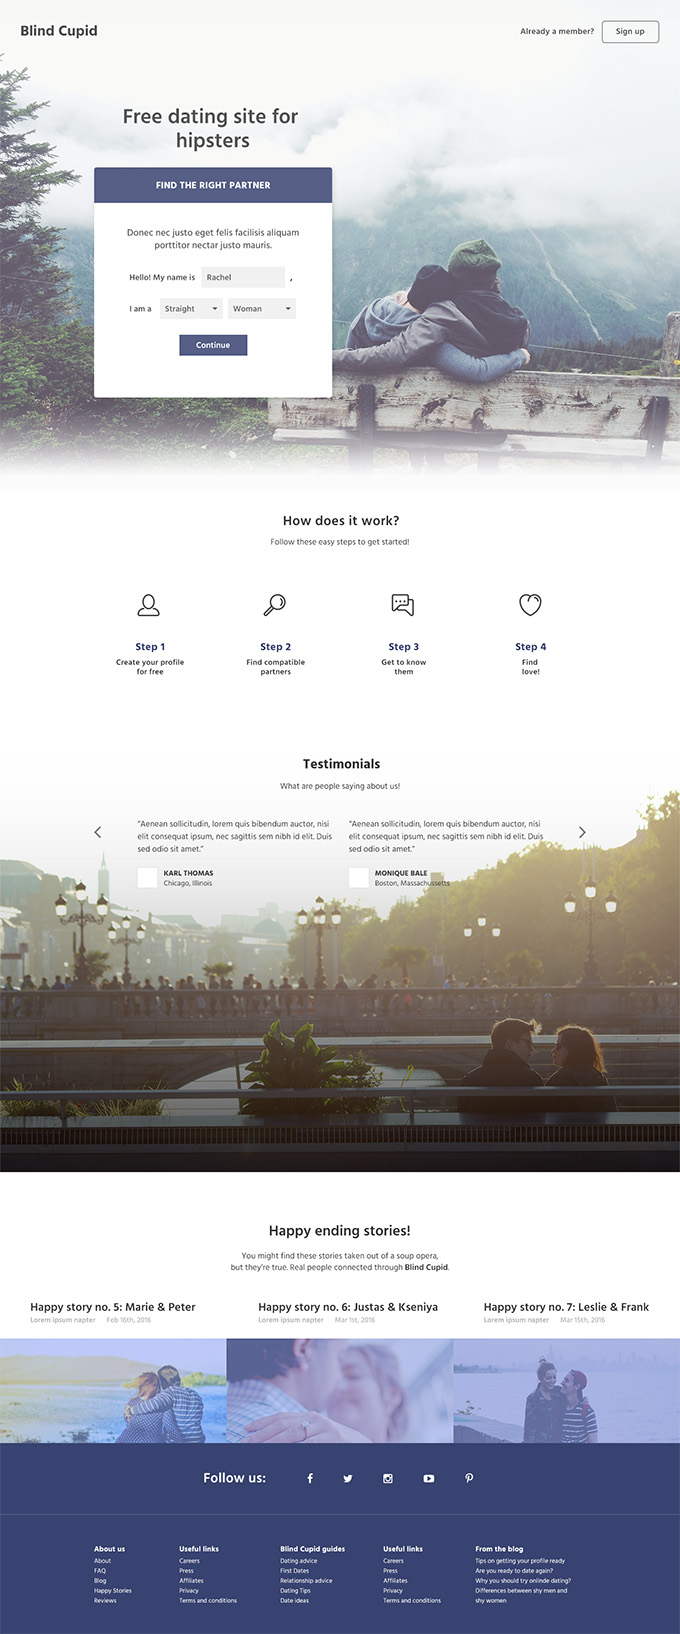 Blind Cupid PSD template - Preview